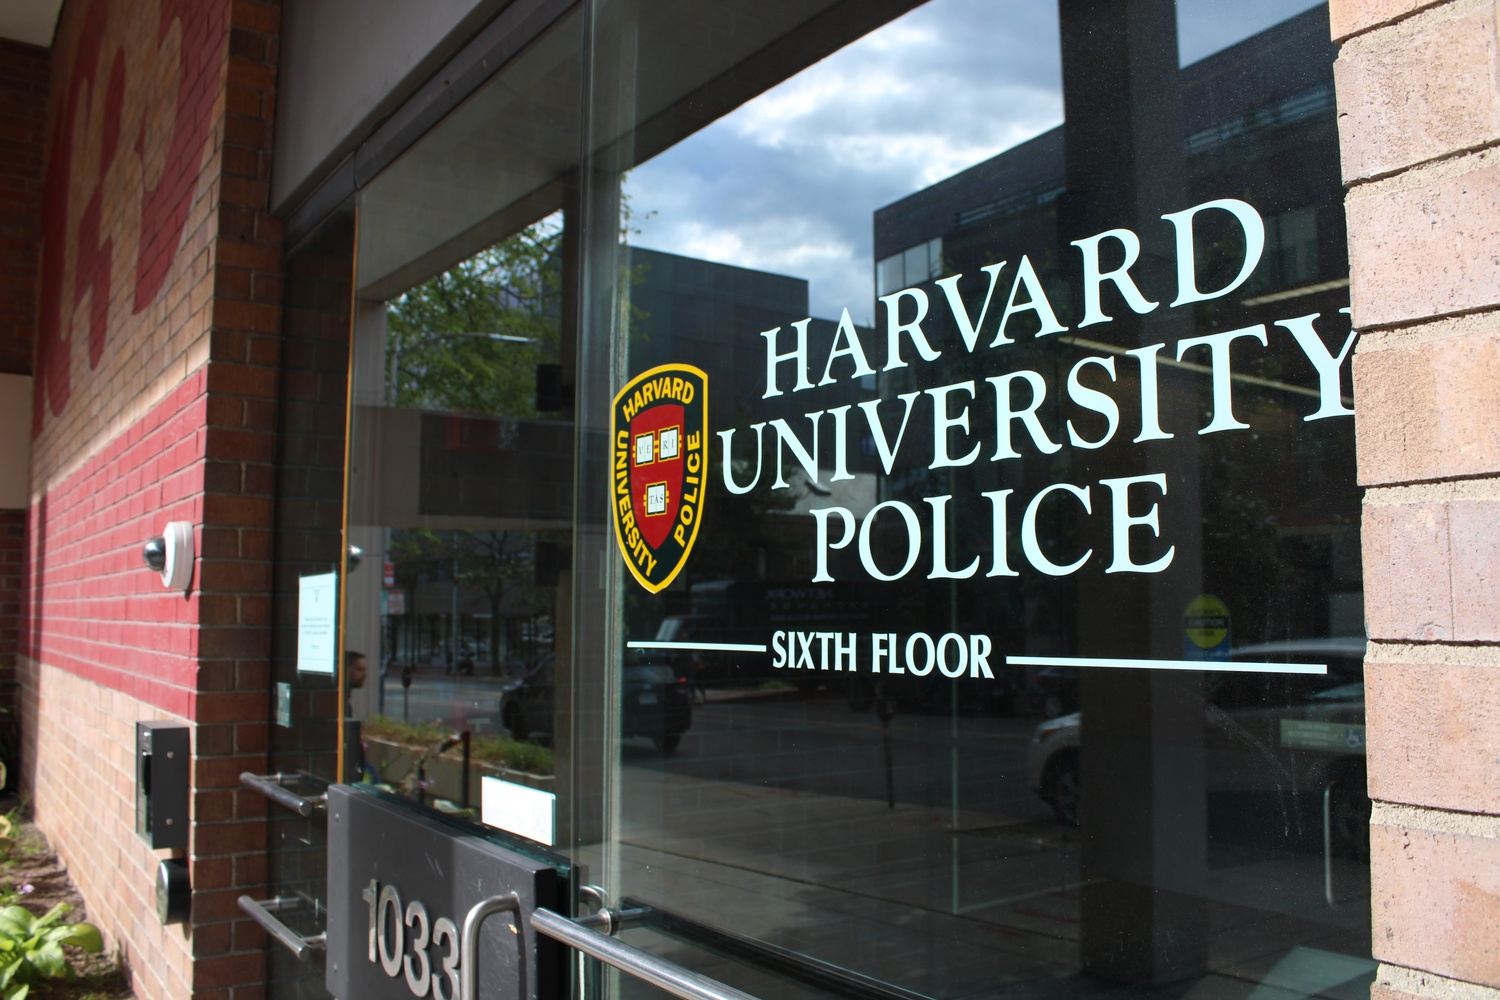 An external review of the Harvard University Police Department released Tuesday recommended re-imagining Harvard's approach to public safety.